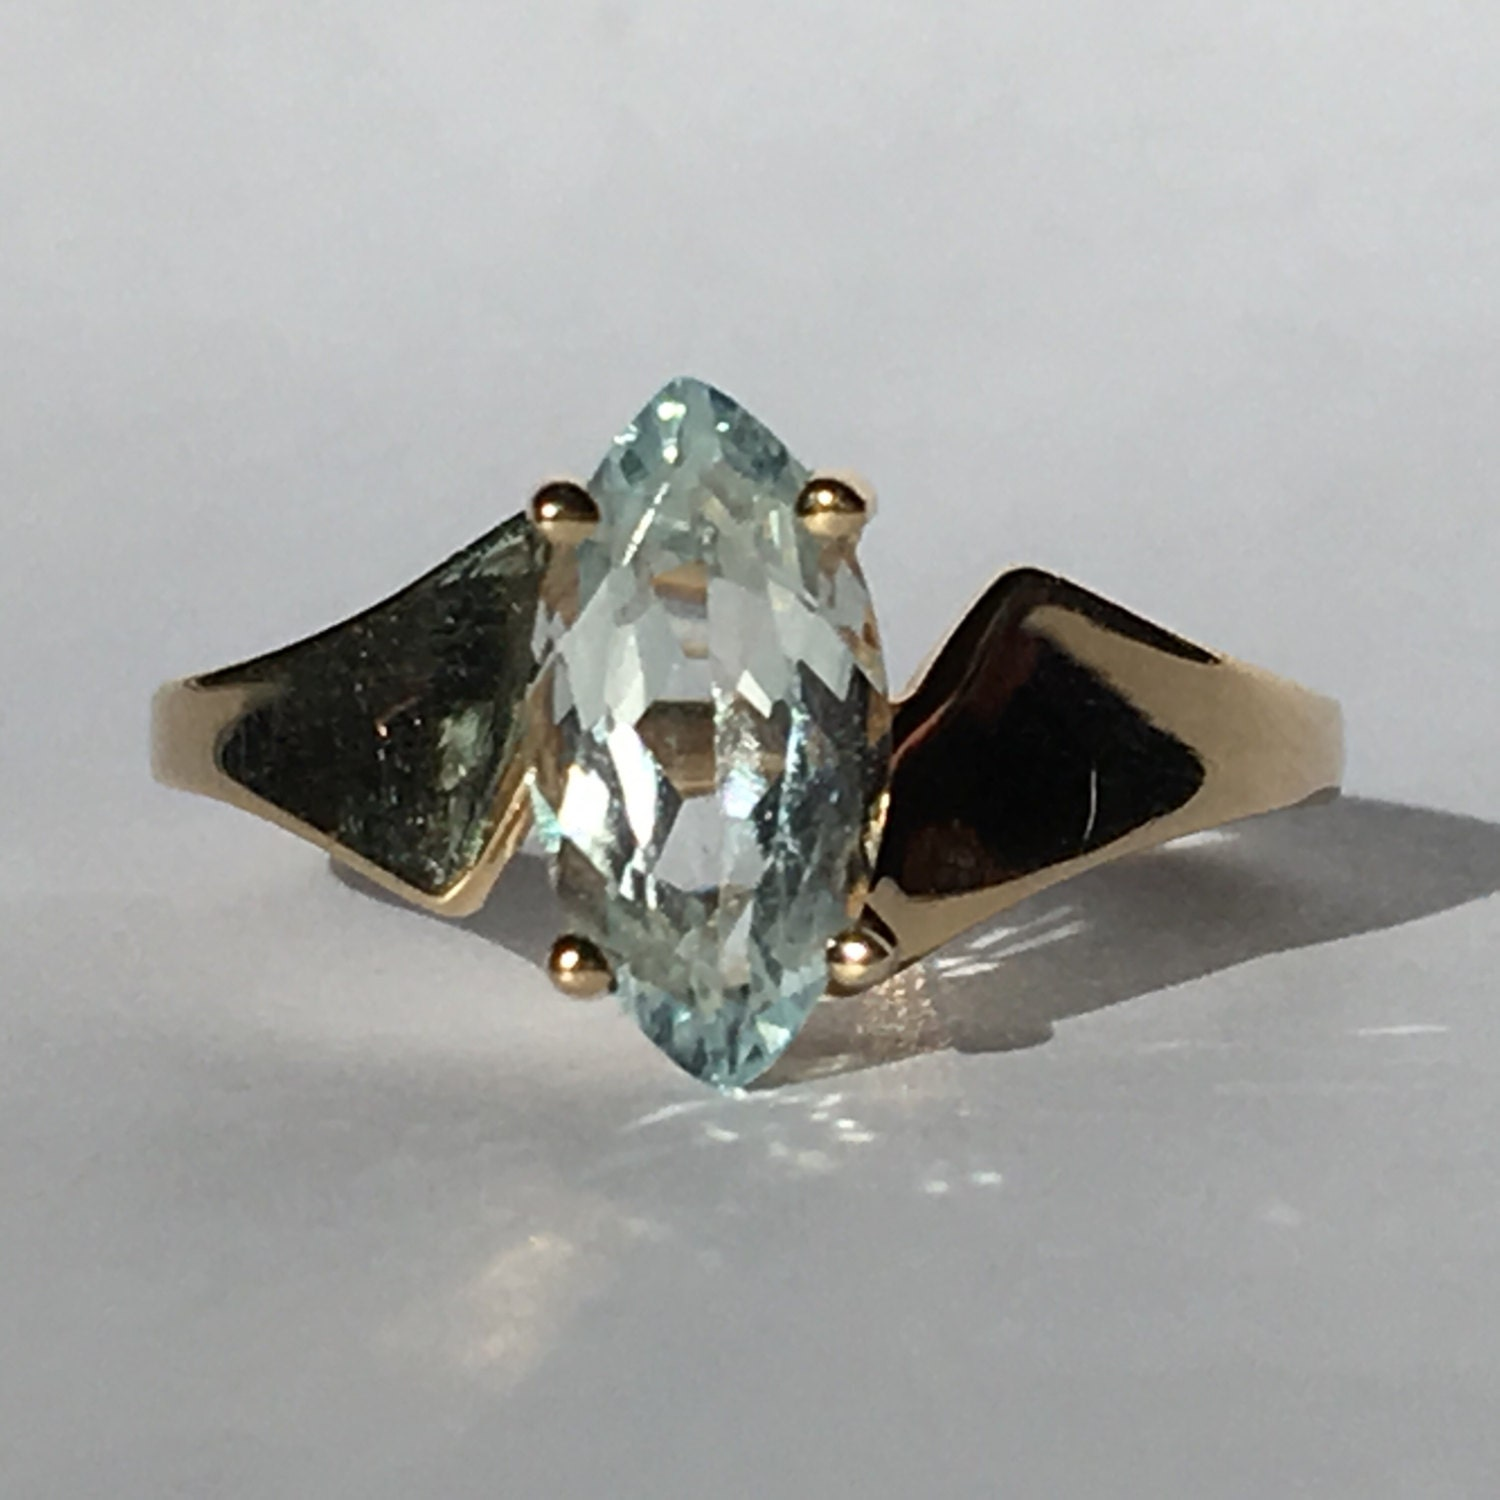 il gallery rings gold vintage ring listing fullxfull and aquamarine modernist yellow diamond engagement photo fknx